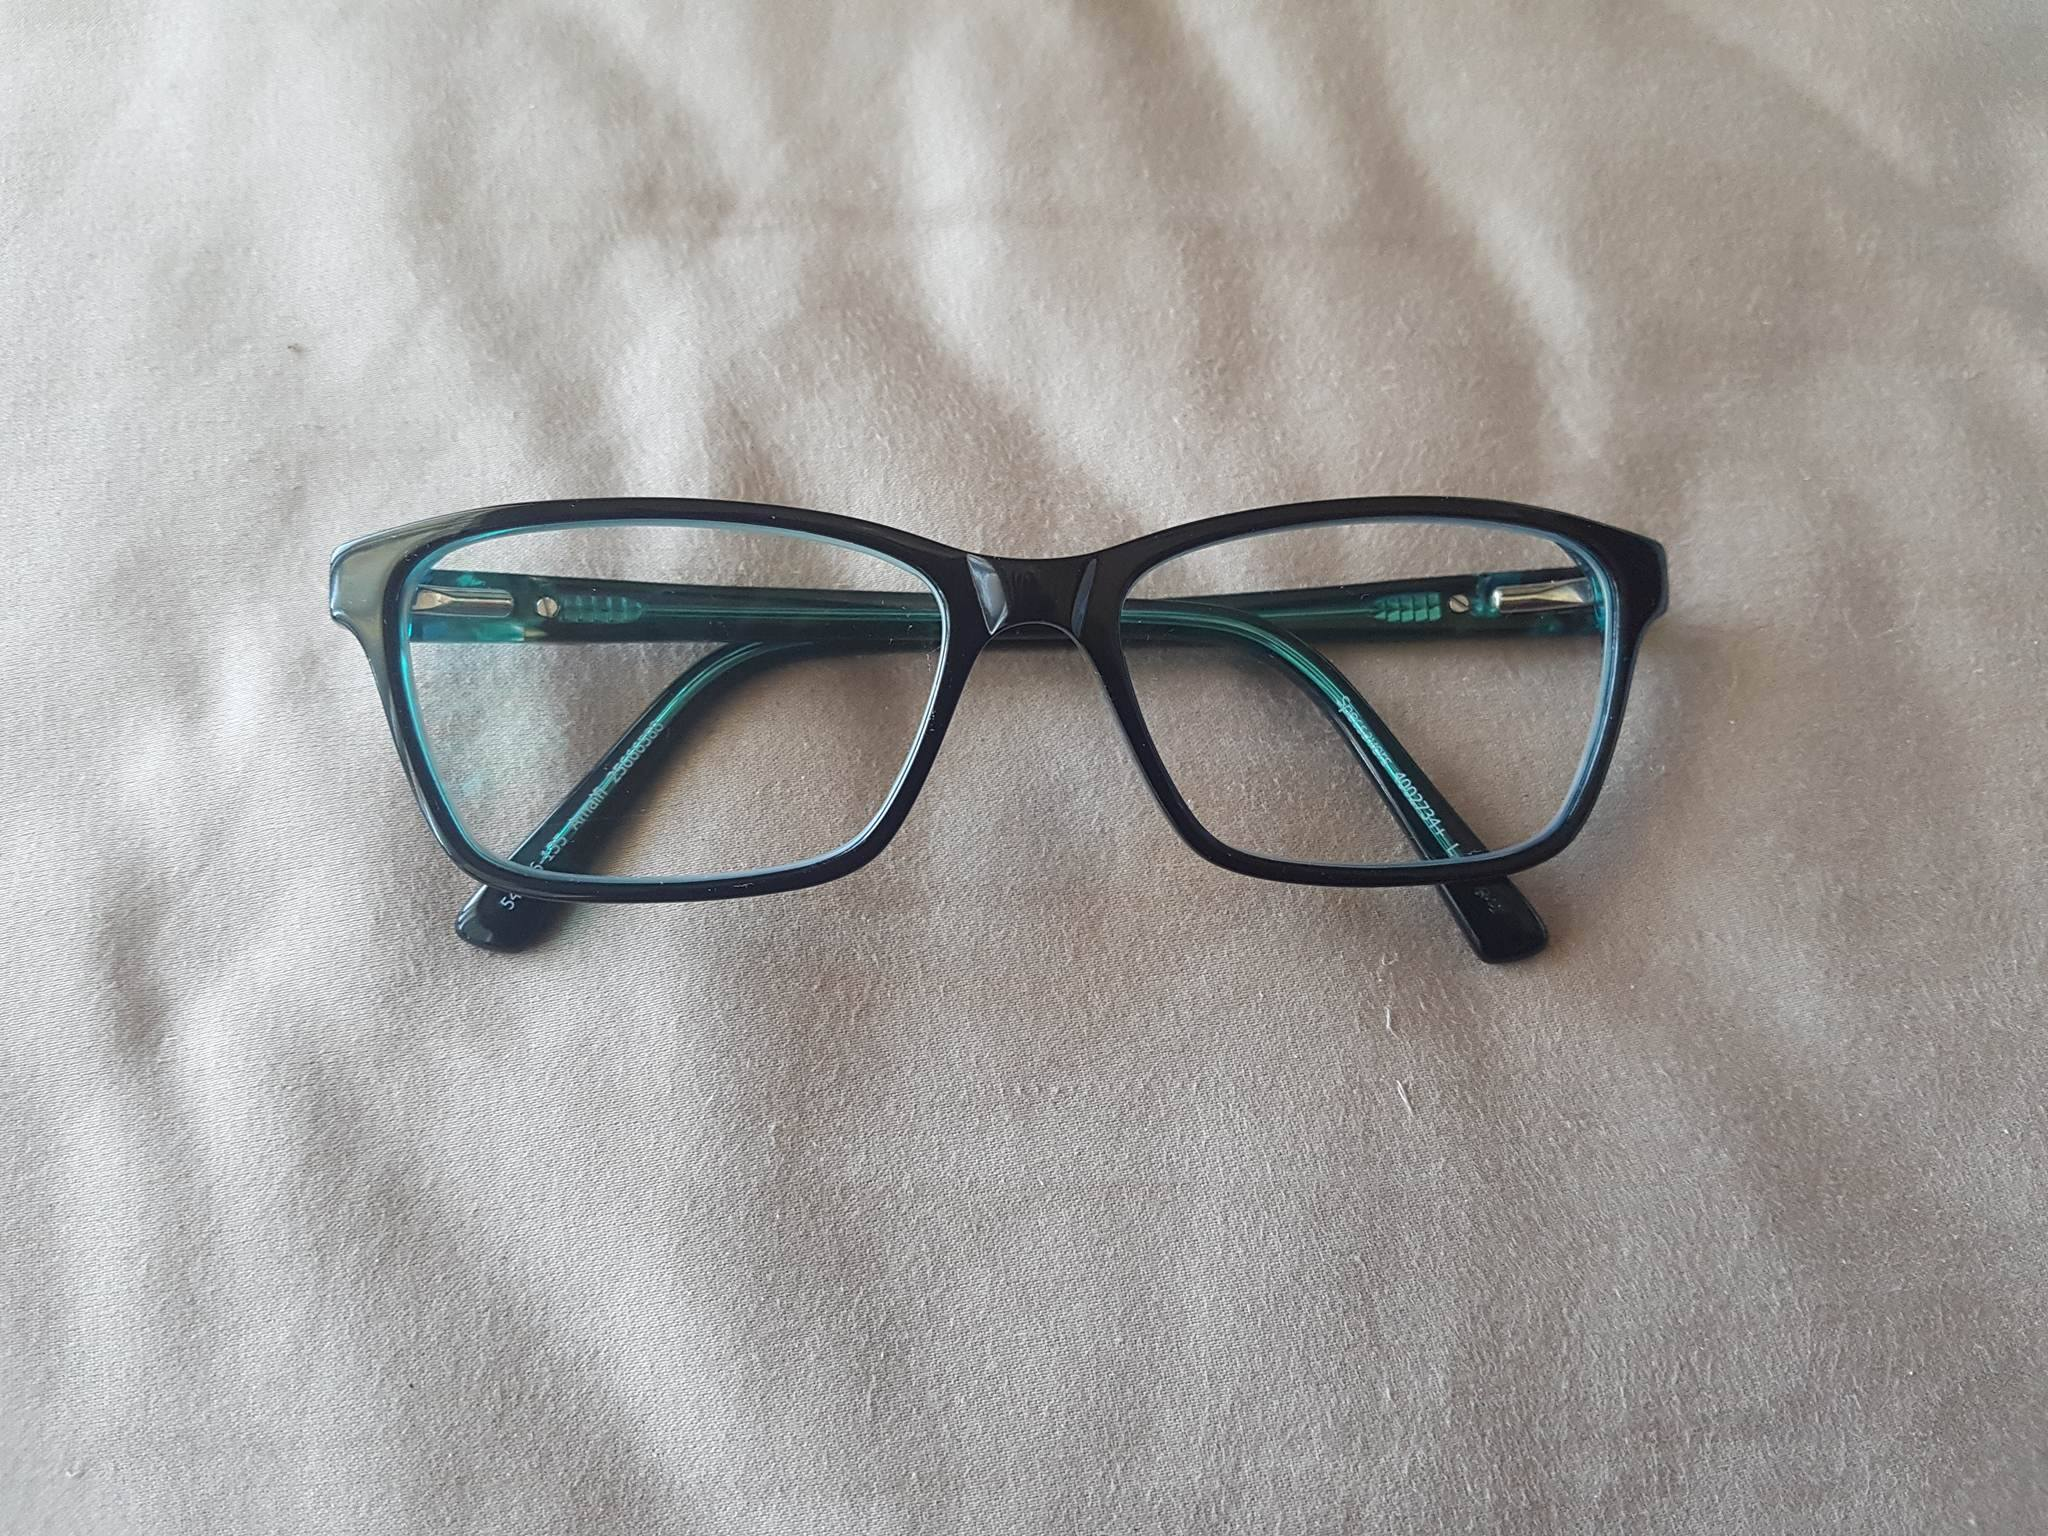 Black and Green Glasses